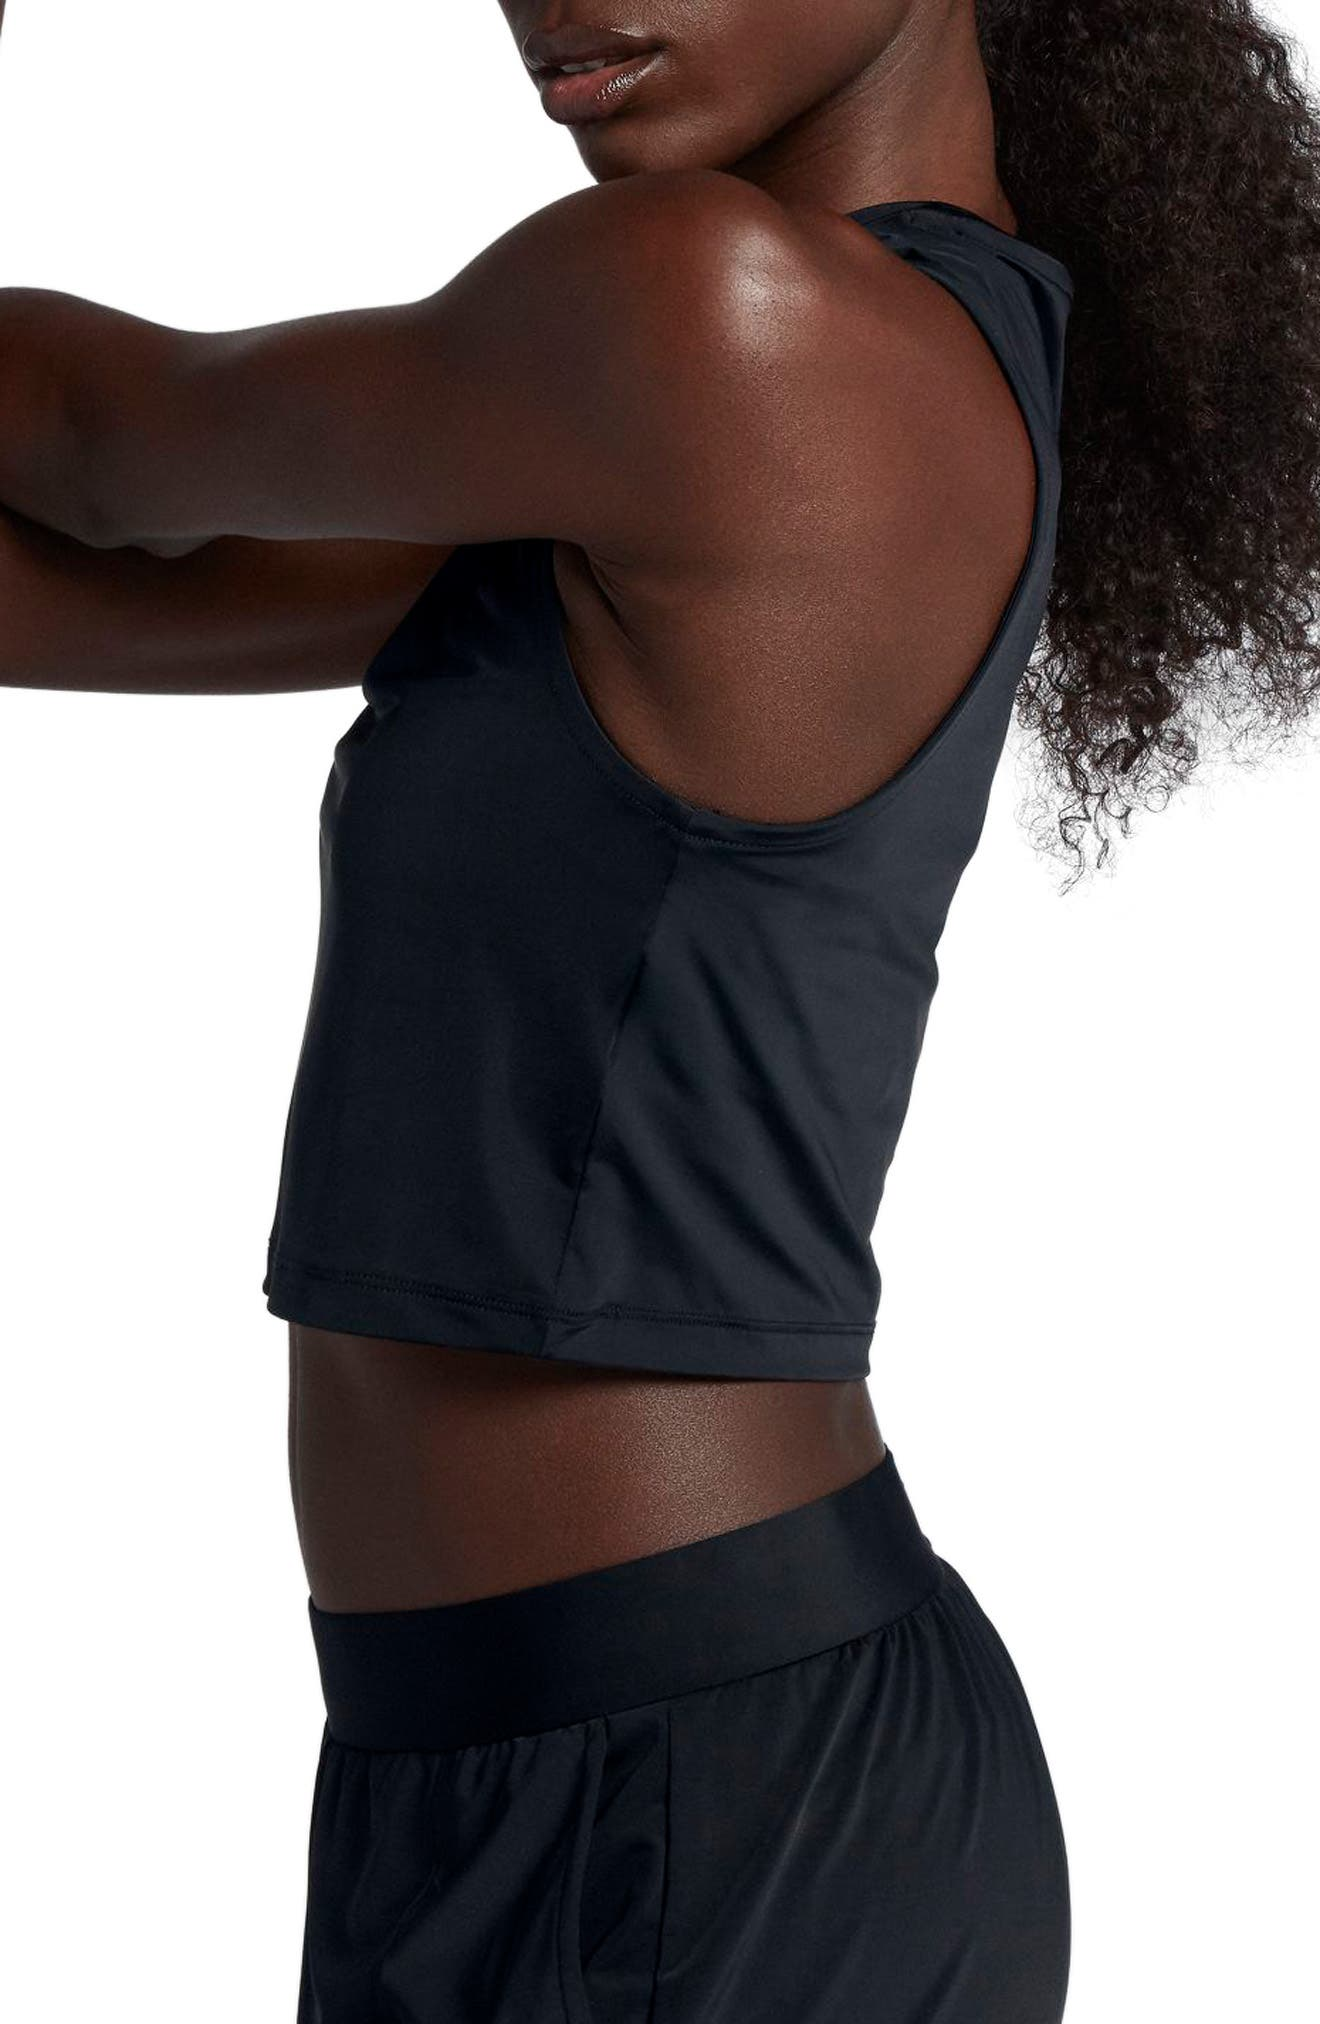 Running Division Women's Cropped Running Top,                             Alternate thumbnail 3, color,                             BLACK/ REFLECT BLACK